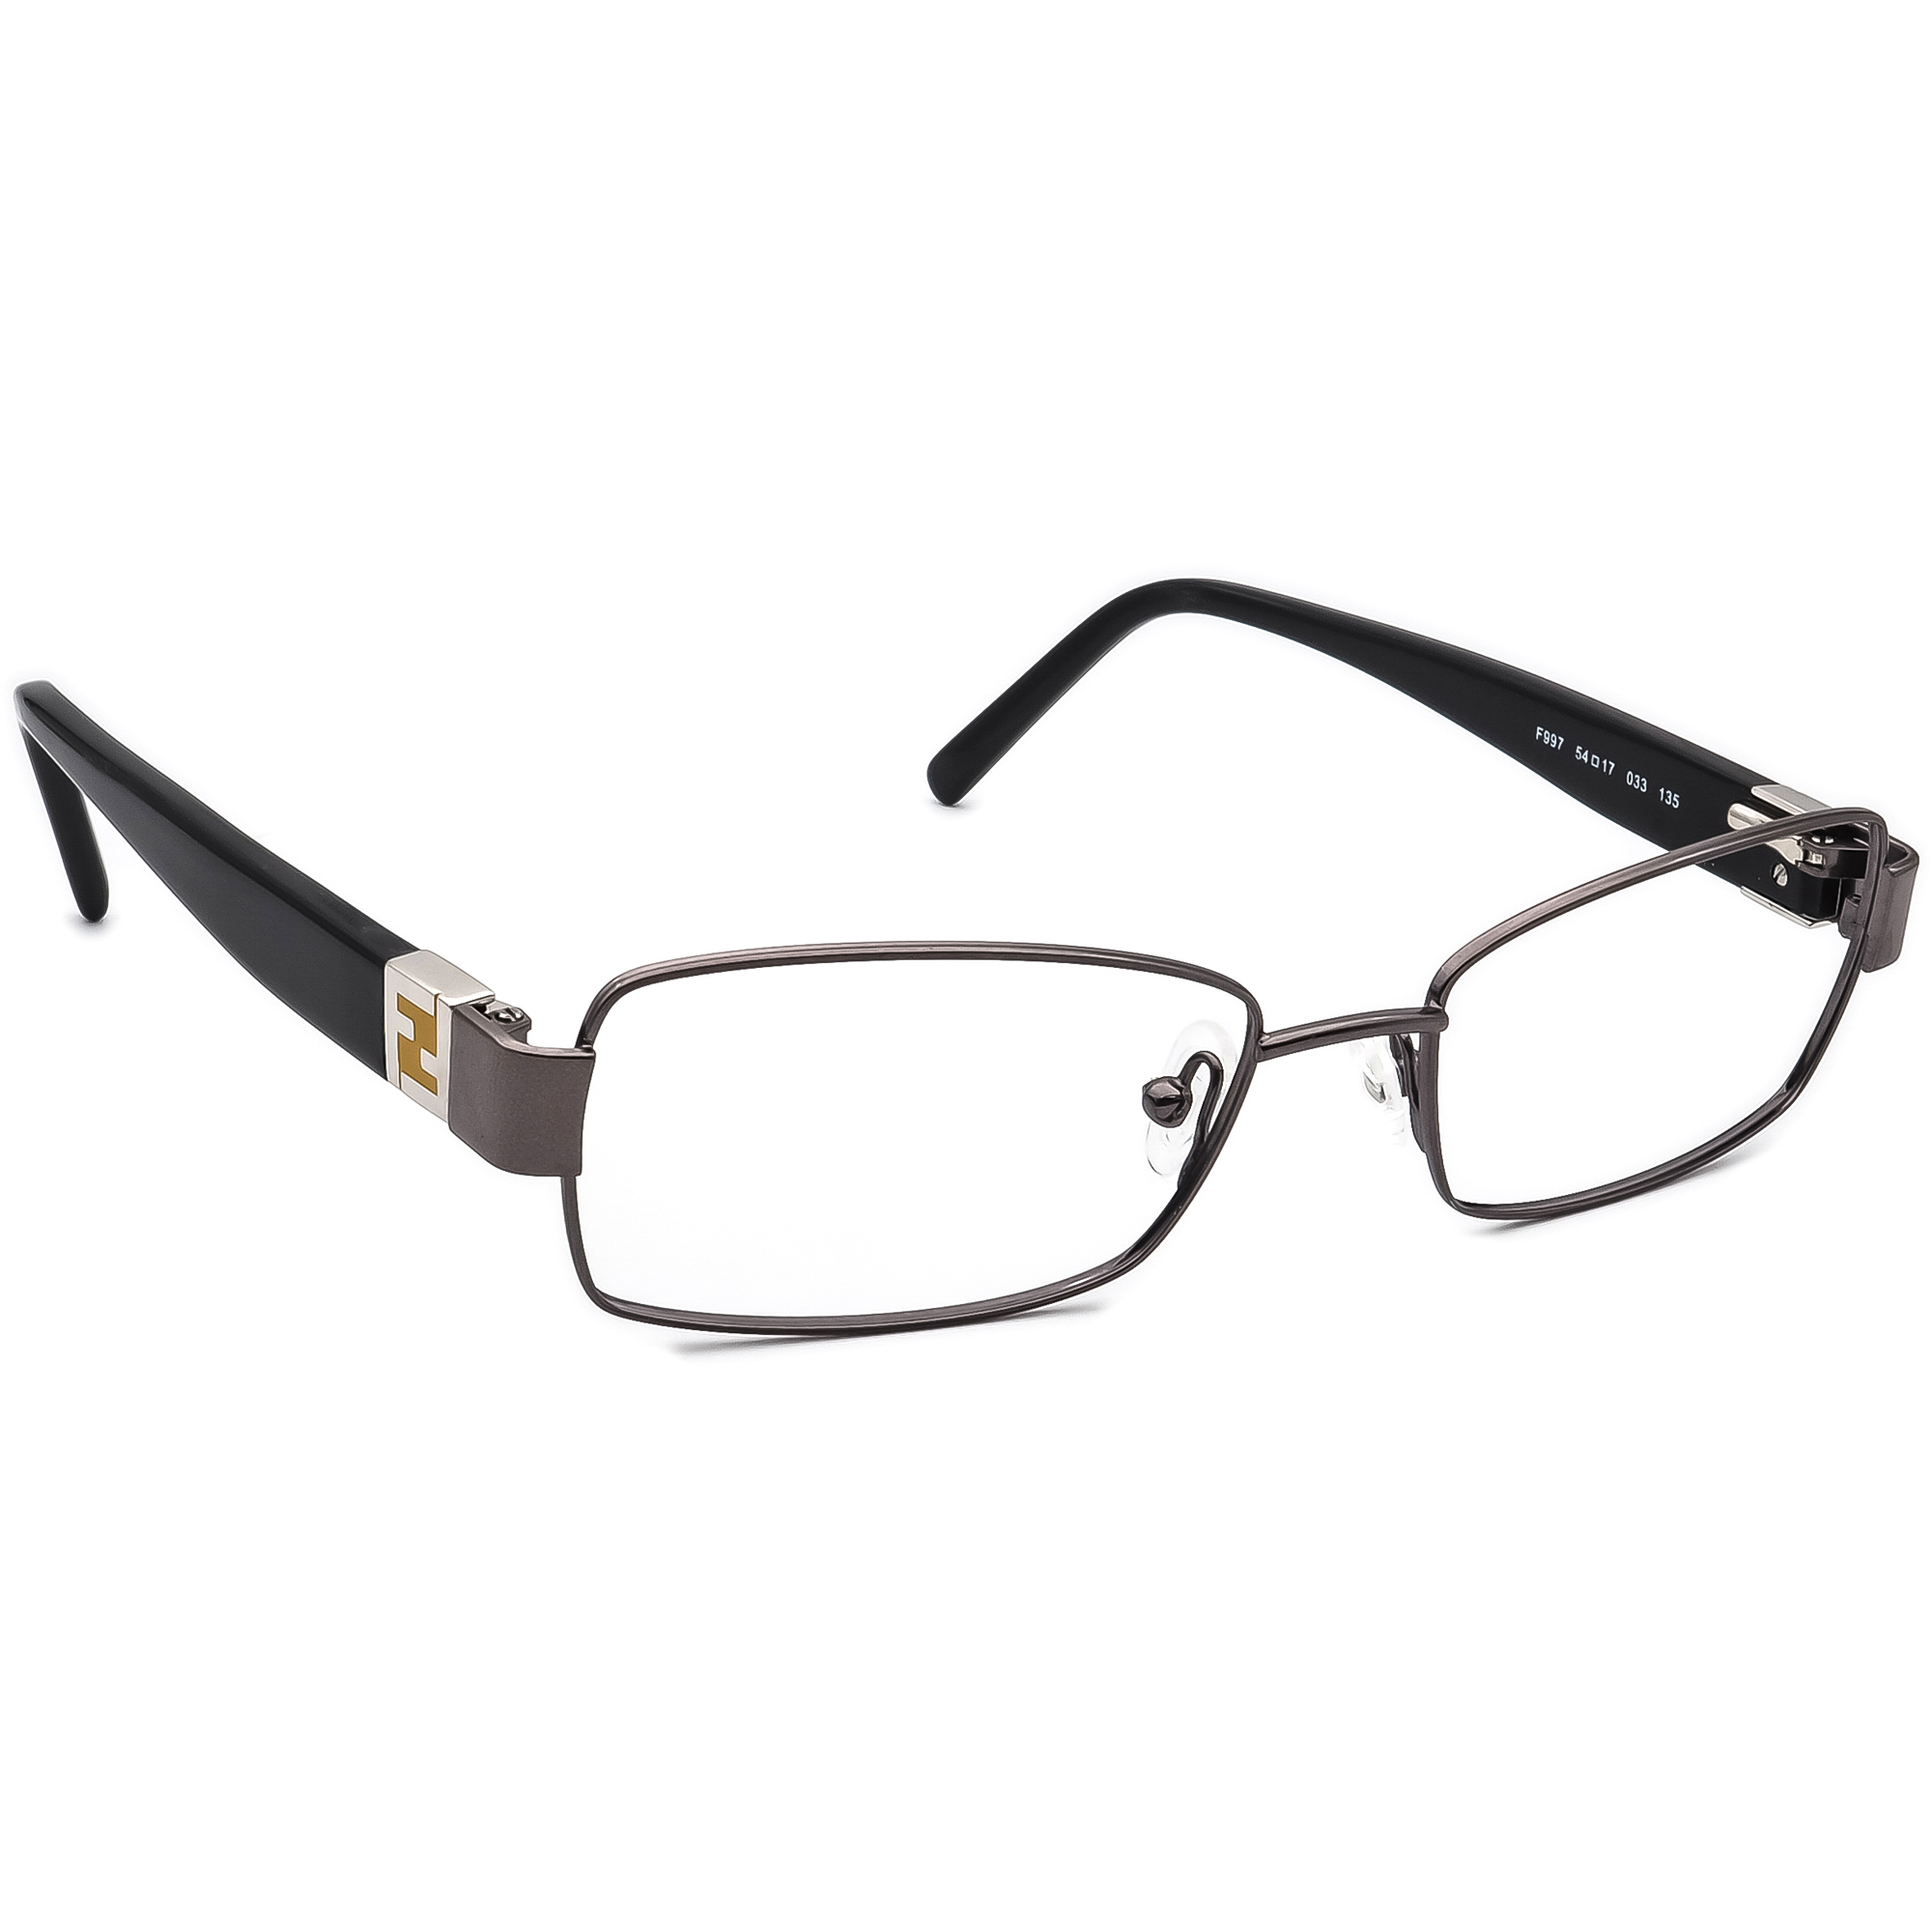 Fendi F997 033 Eyeglasses